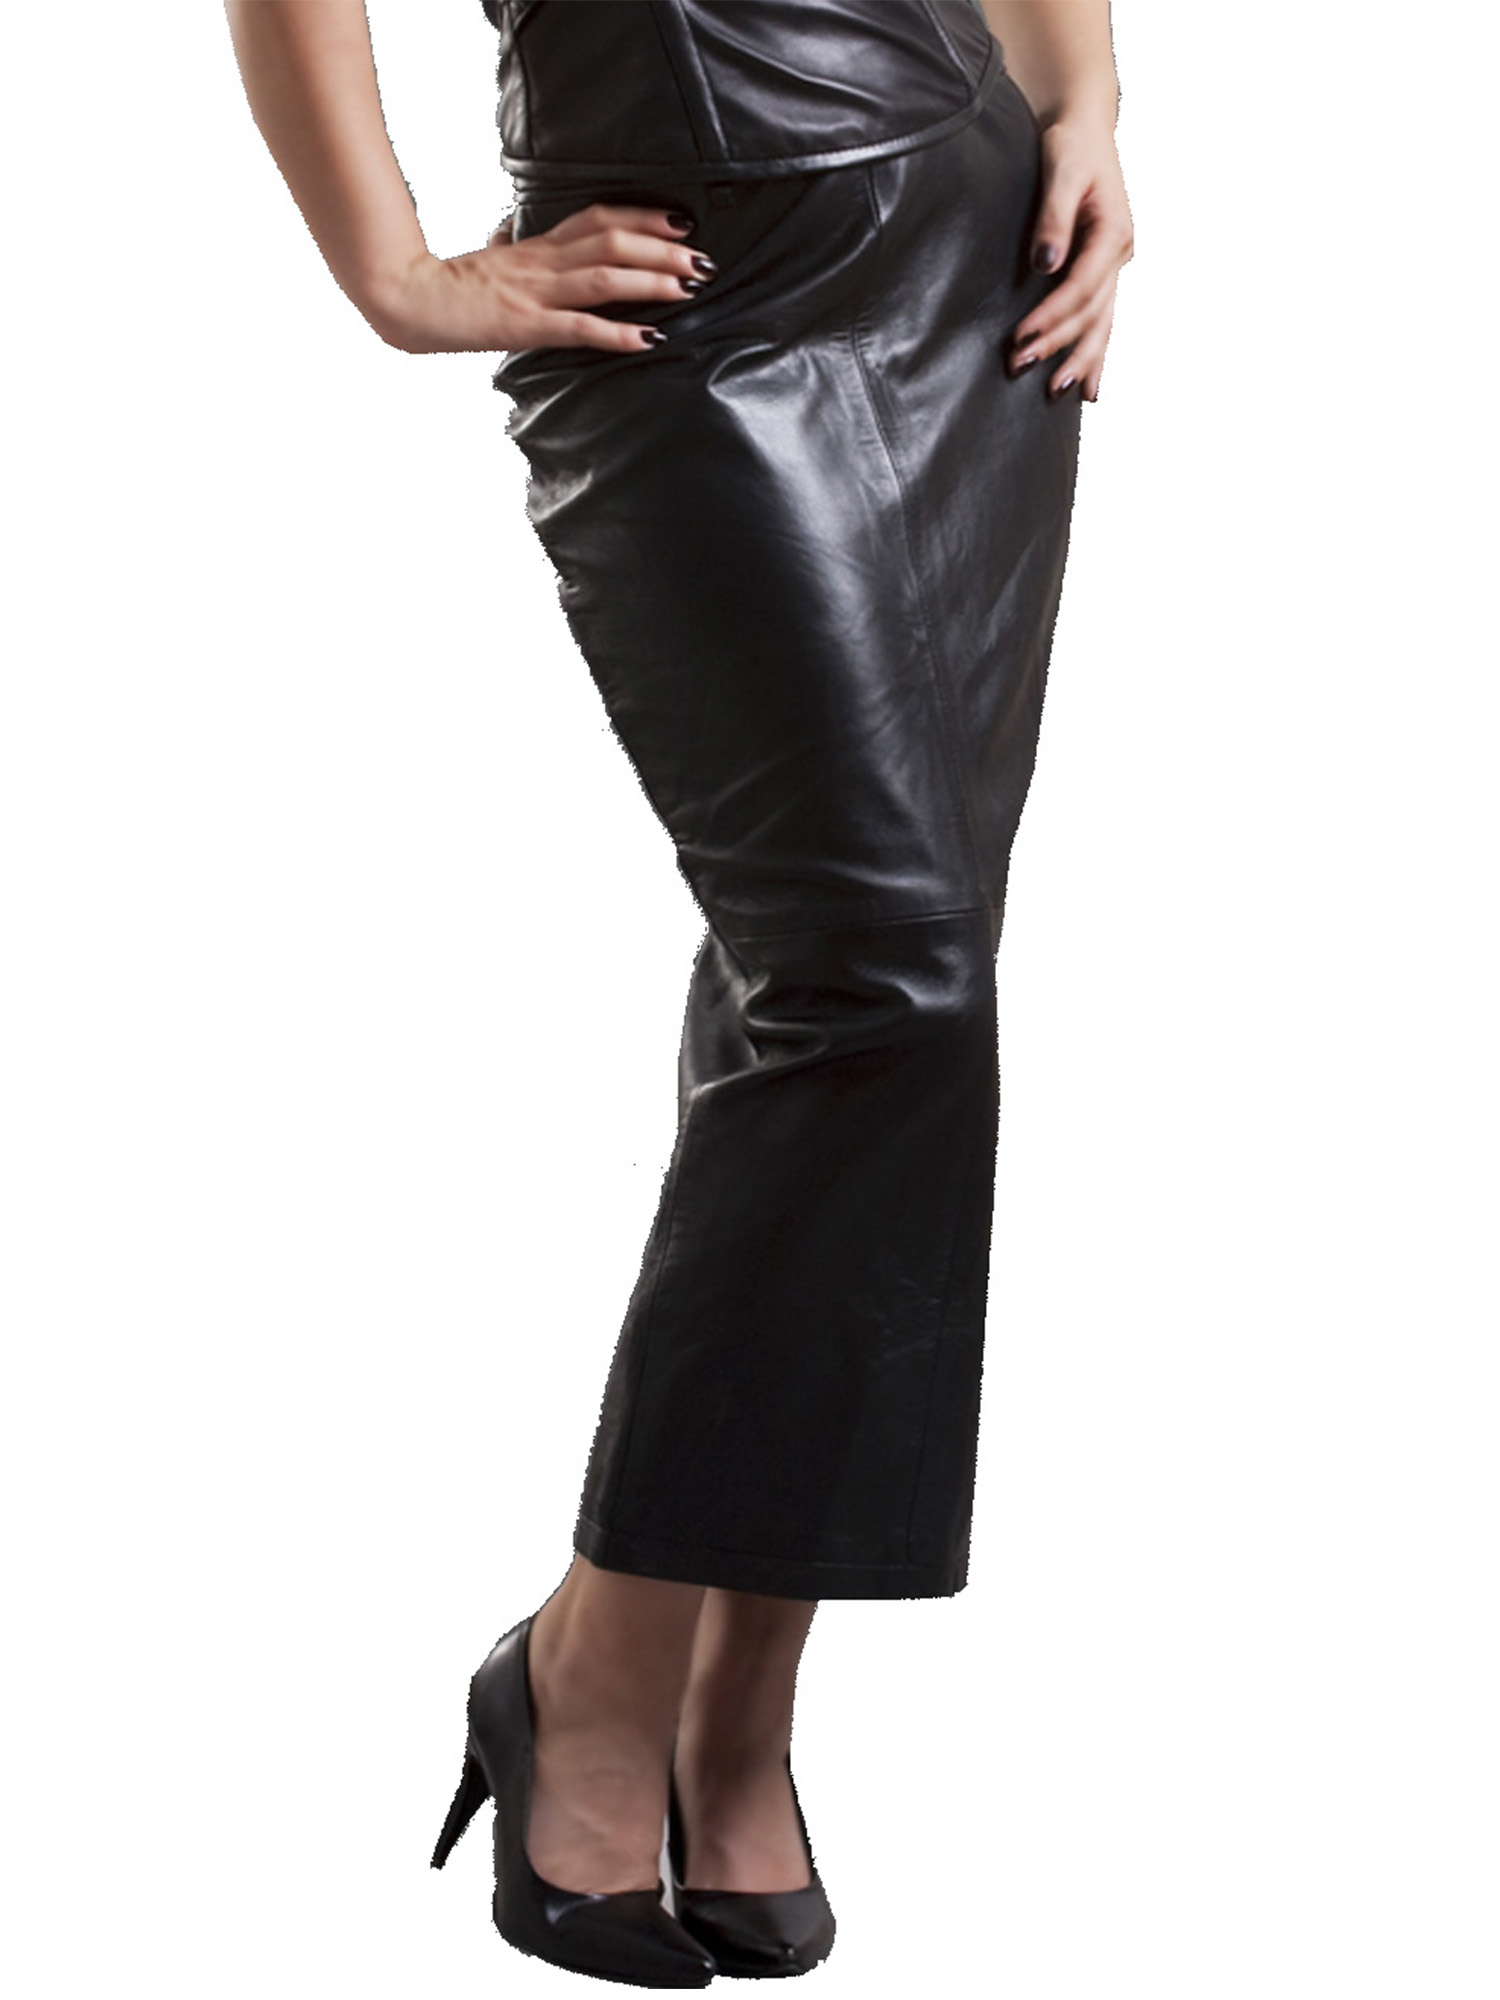 Fetish leather skirt consider